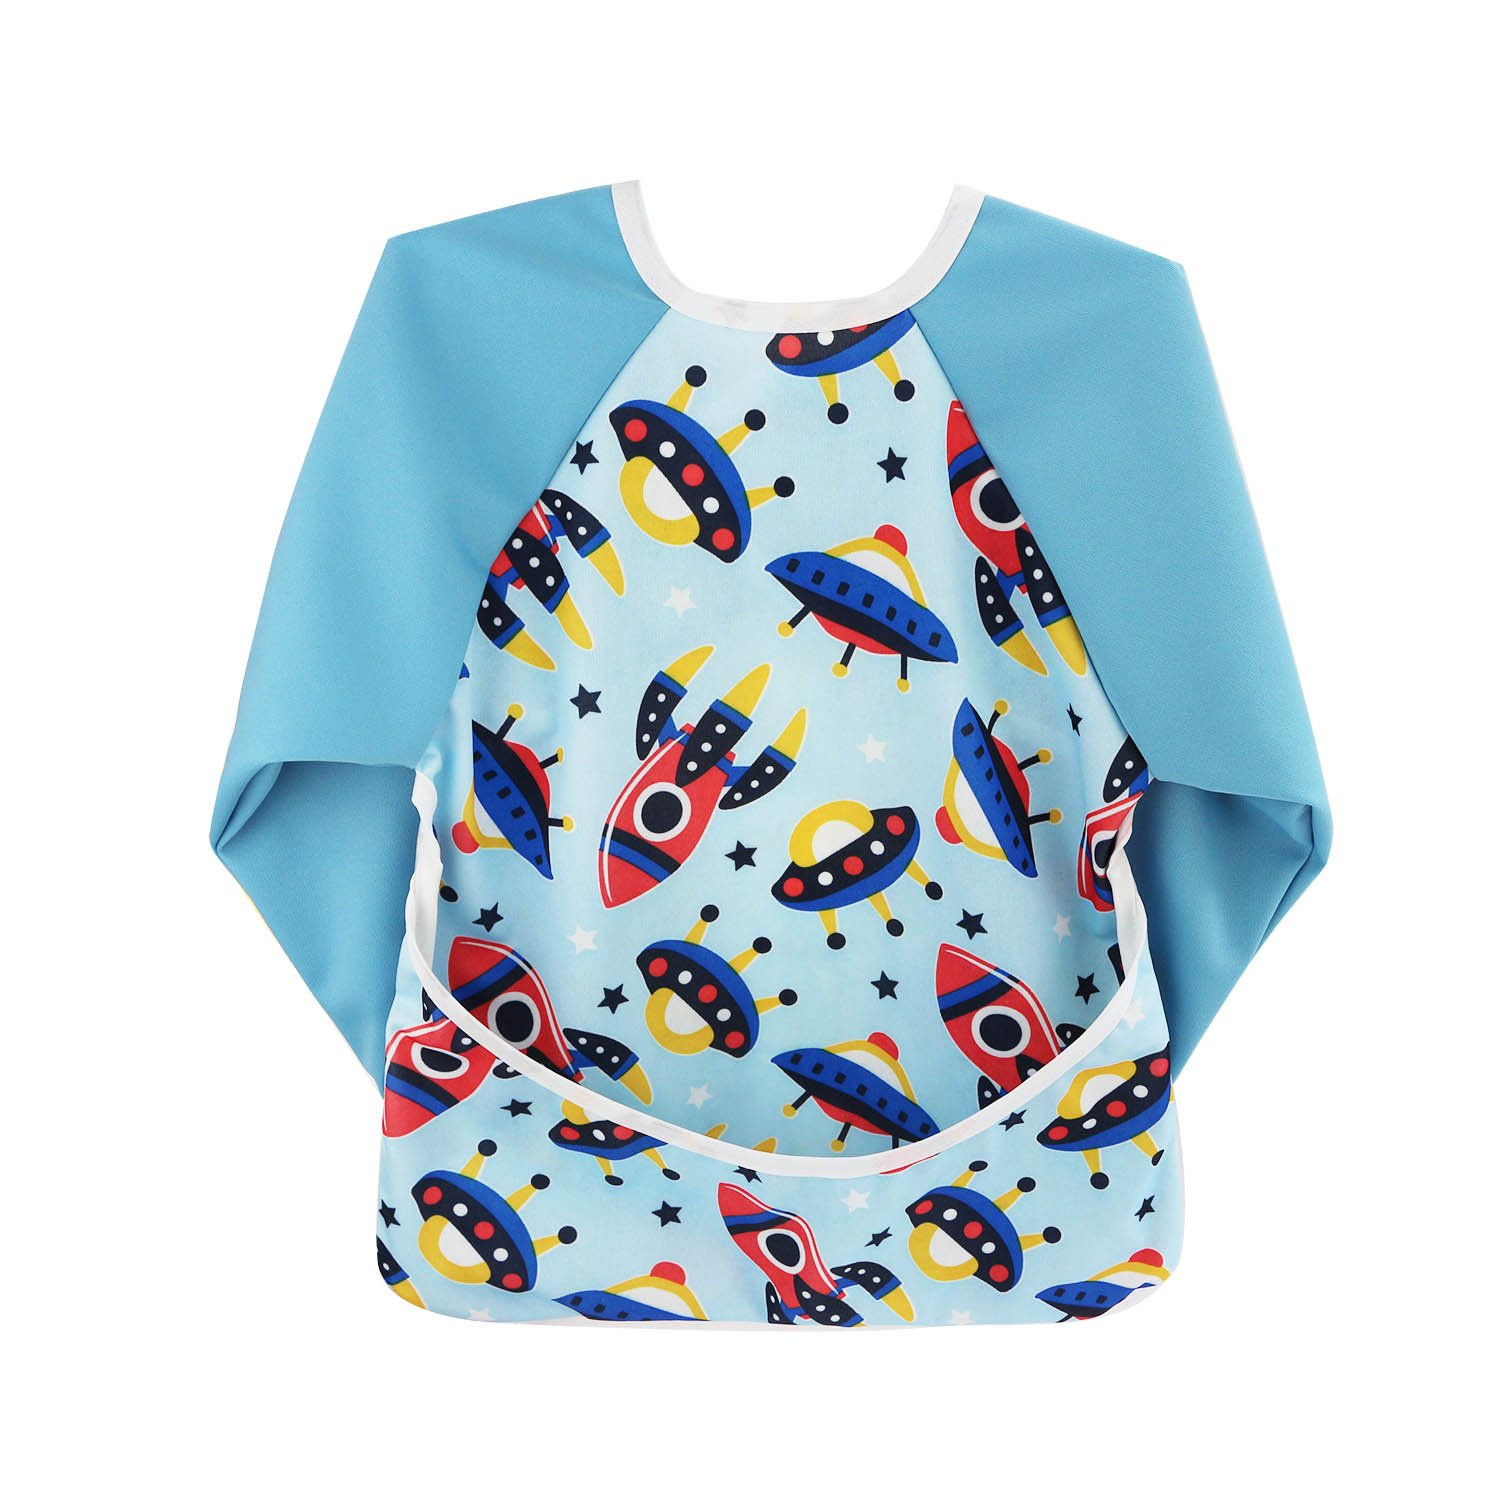 Hi Sprout Toddler Baby Waterproof Sleeved Bib, Bib with Sleeves&Pocket, 6-24 Months Reusable Bib with Sleeves& Pocket Multi Patterns 6-24 Months (Adorable Hedgehog) BWS012